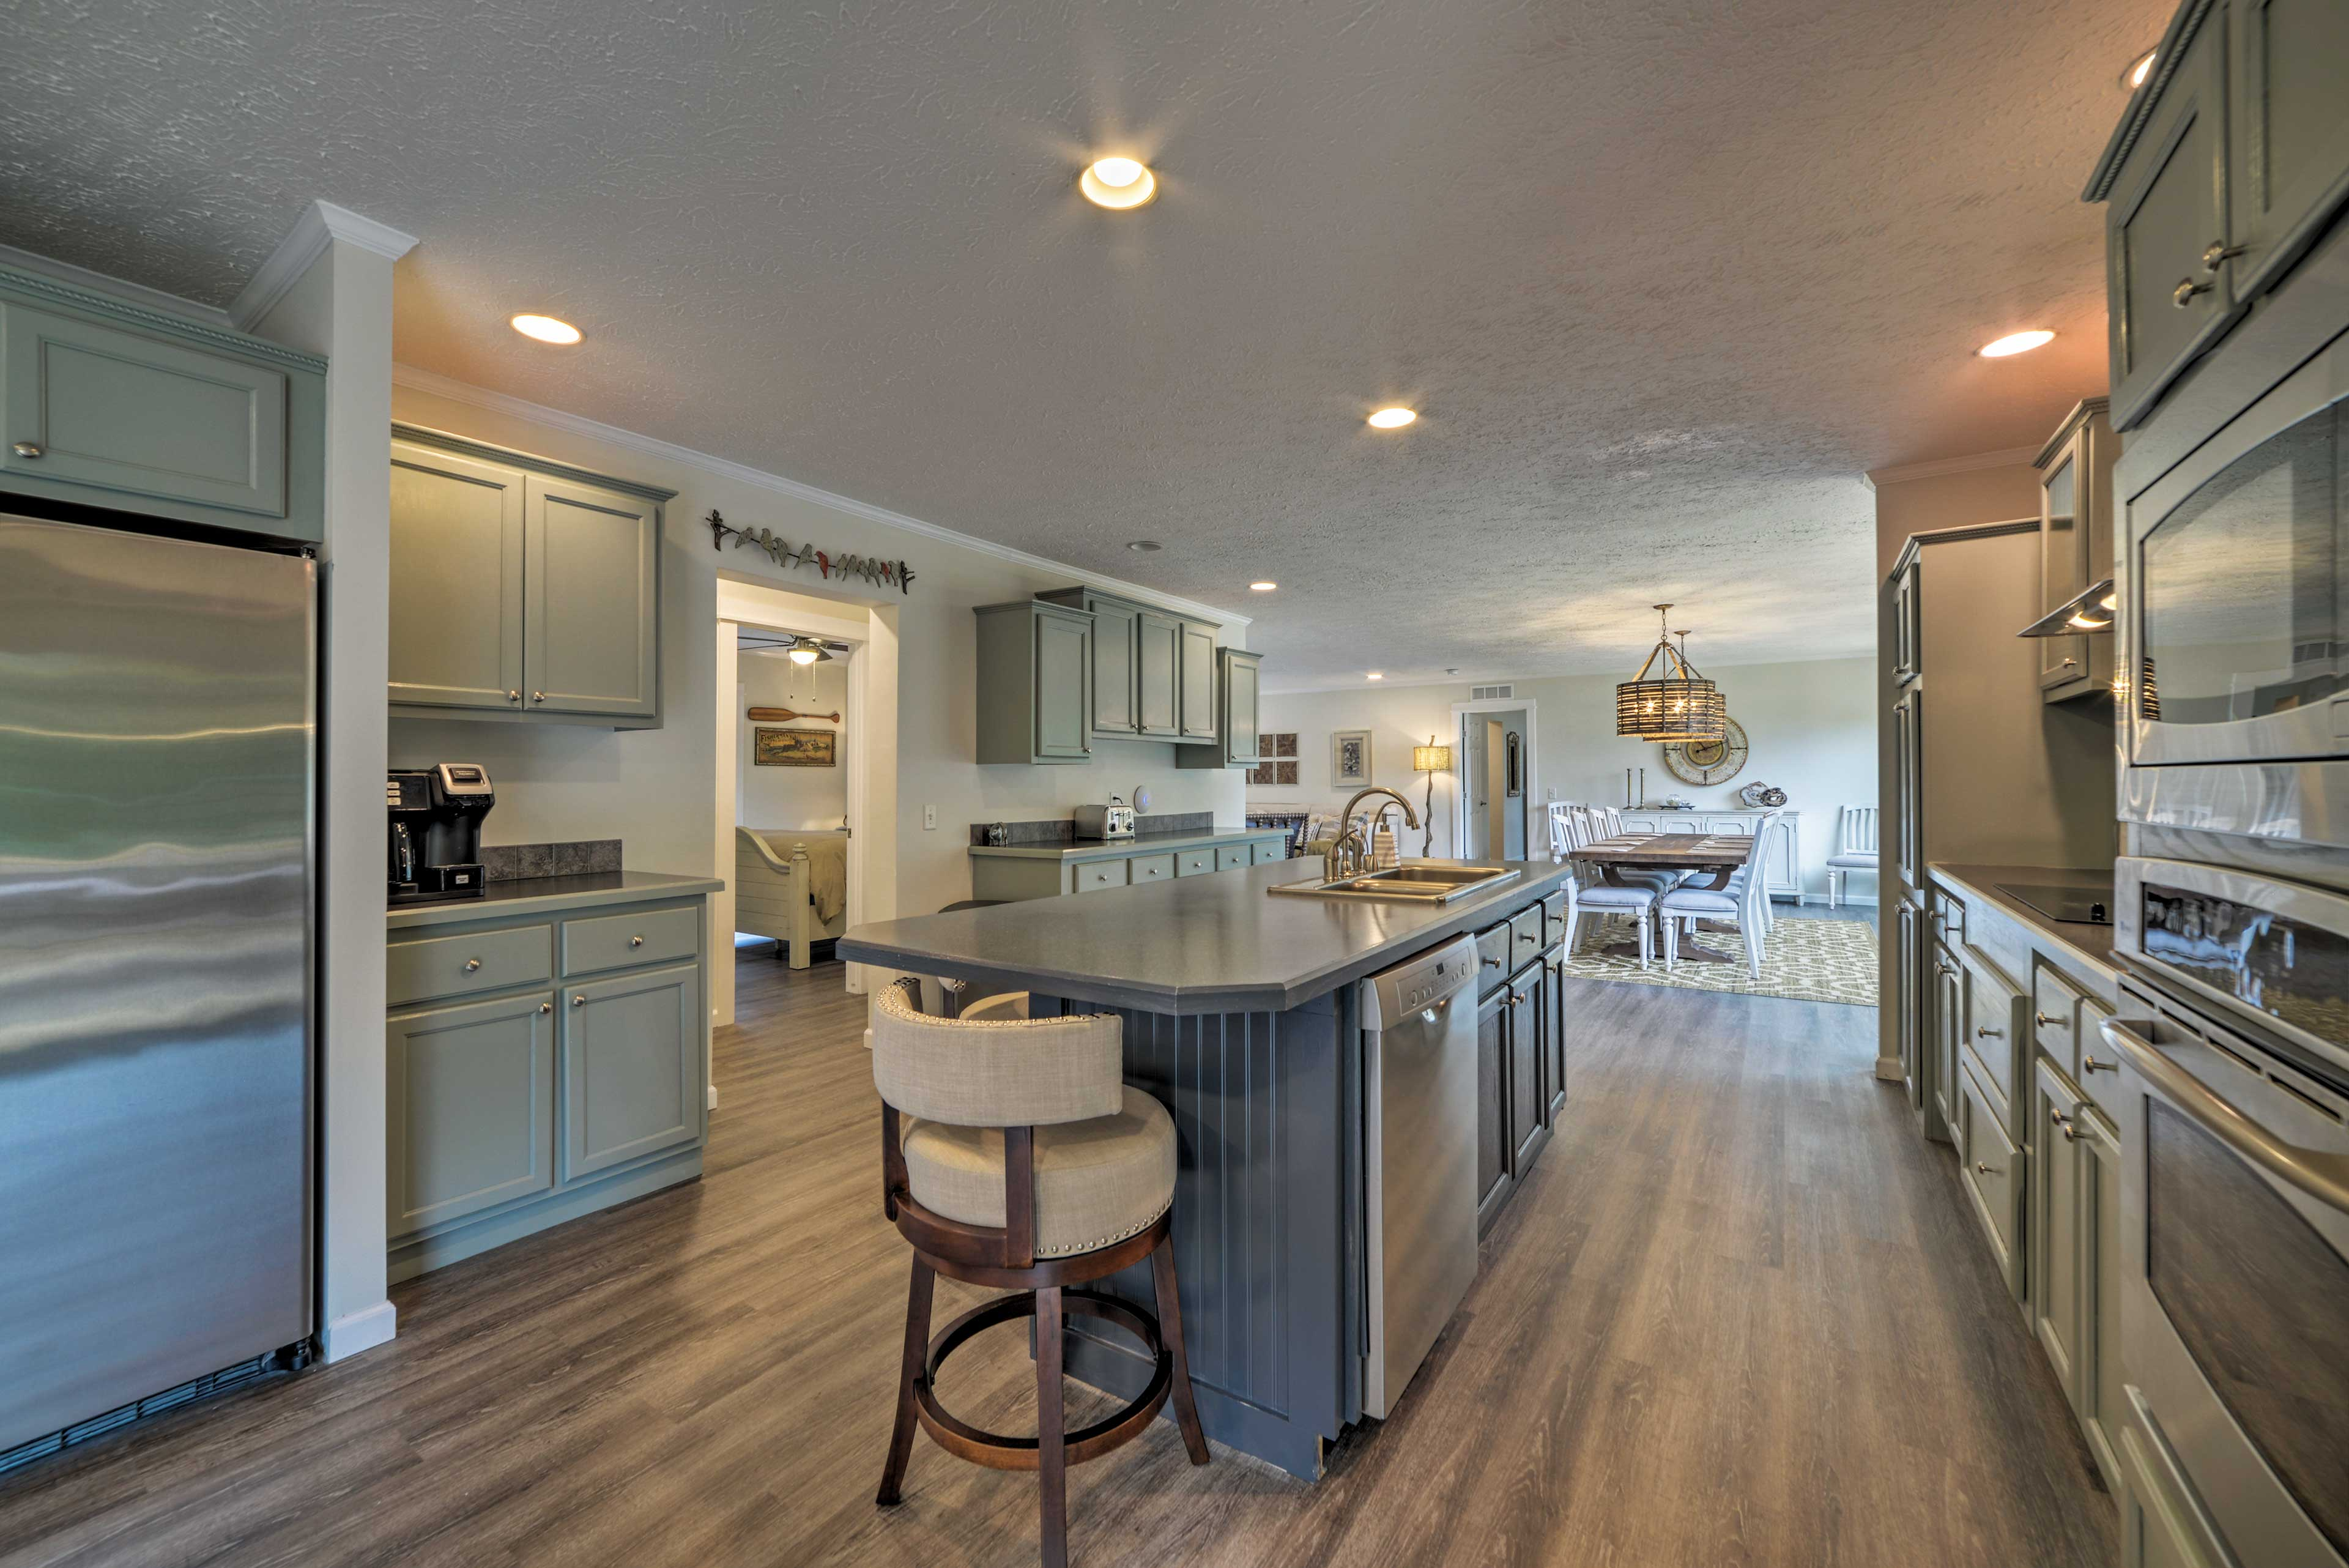 The full equipped kitchen is a chef's dream!